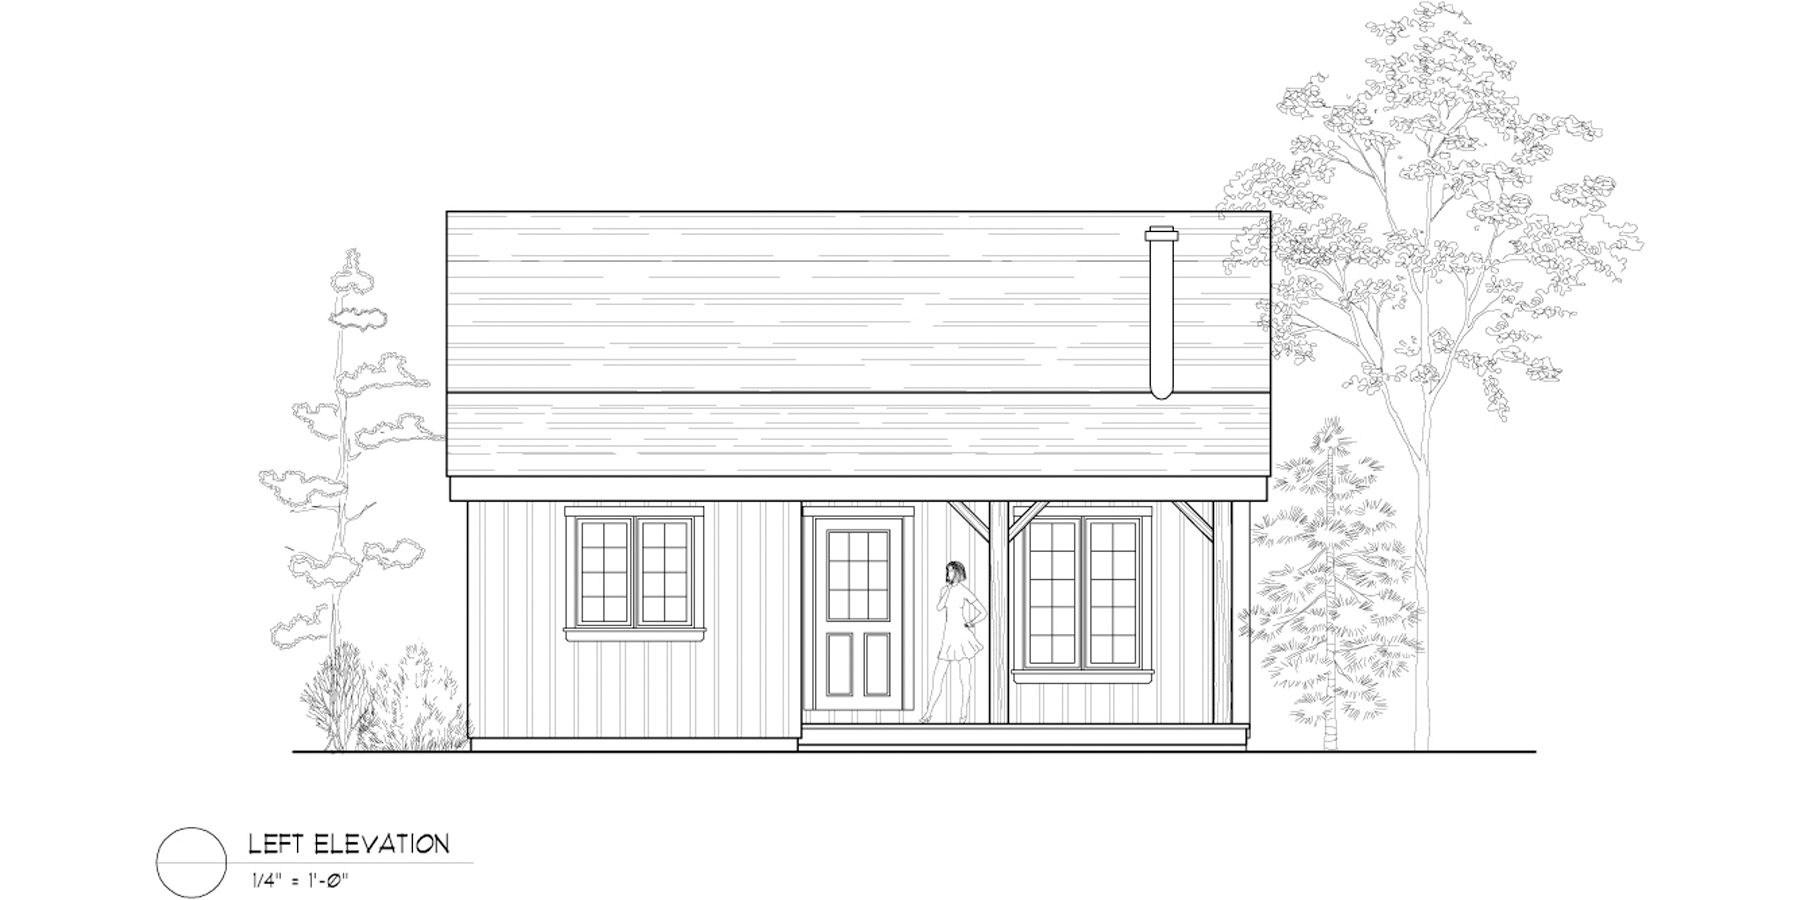 Normerica Timber Frame, House Plan, The Retreat 3143, Left Elevation